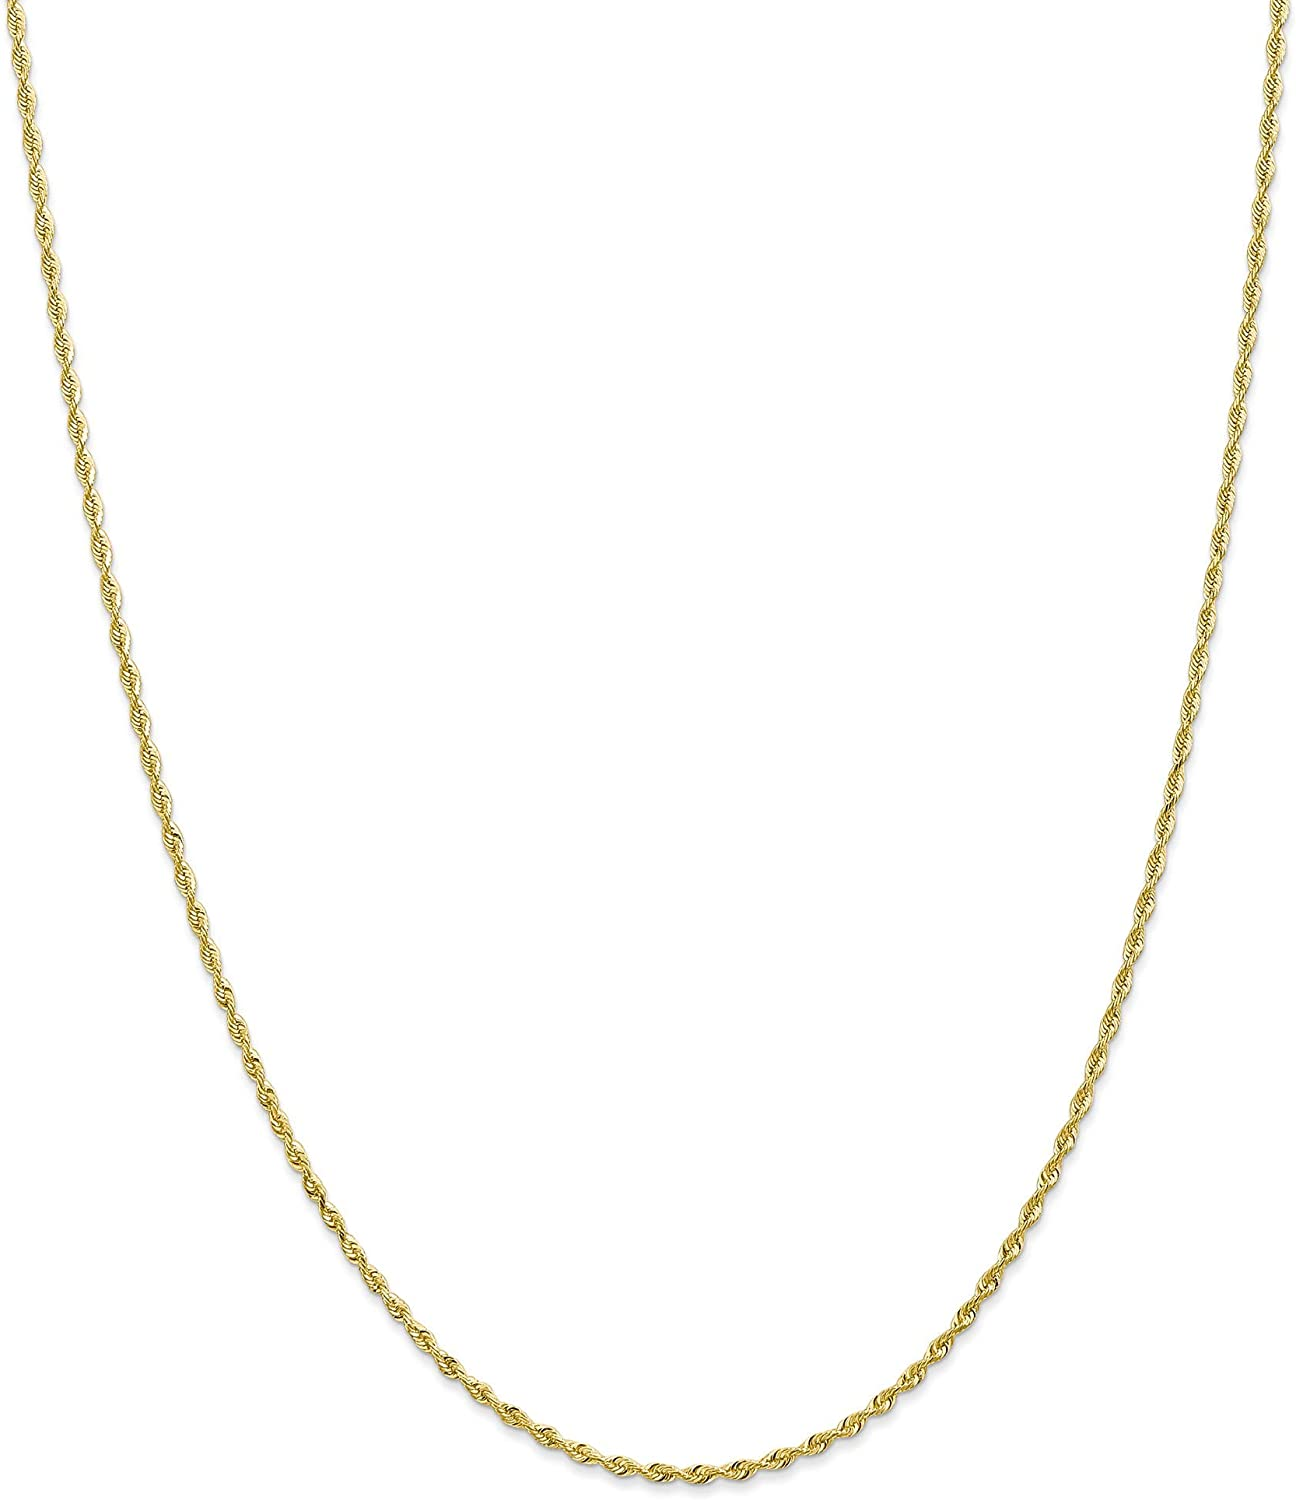 10k 1.85mm D C Quadruple Rope 24 Chain Yellow Opening Max 76% OFF large release sale Gold Length: